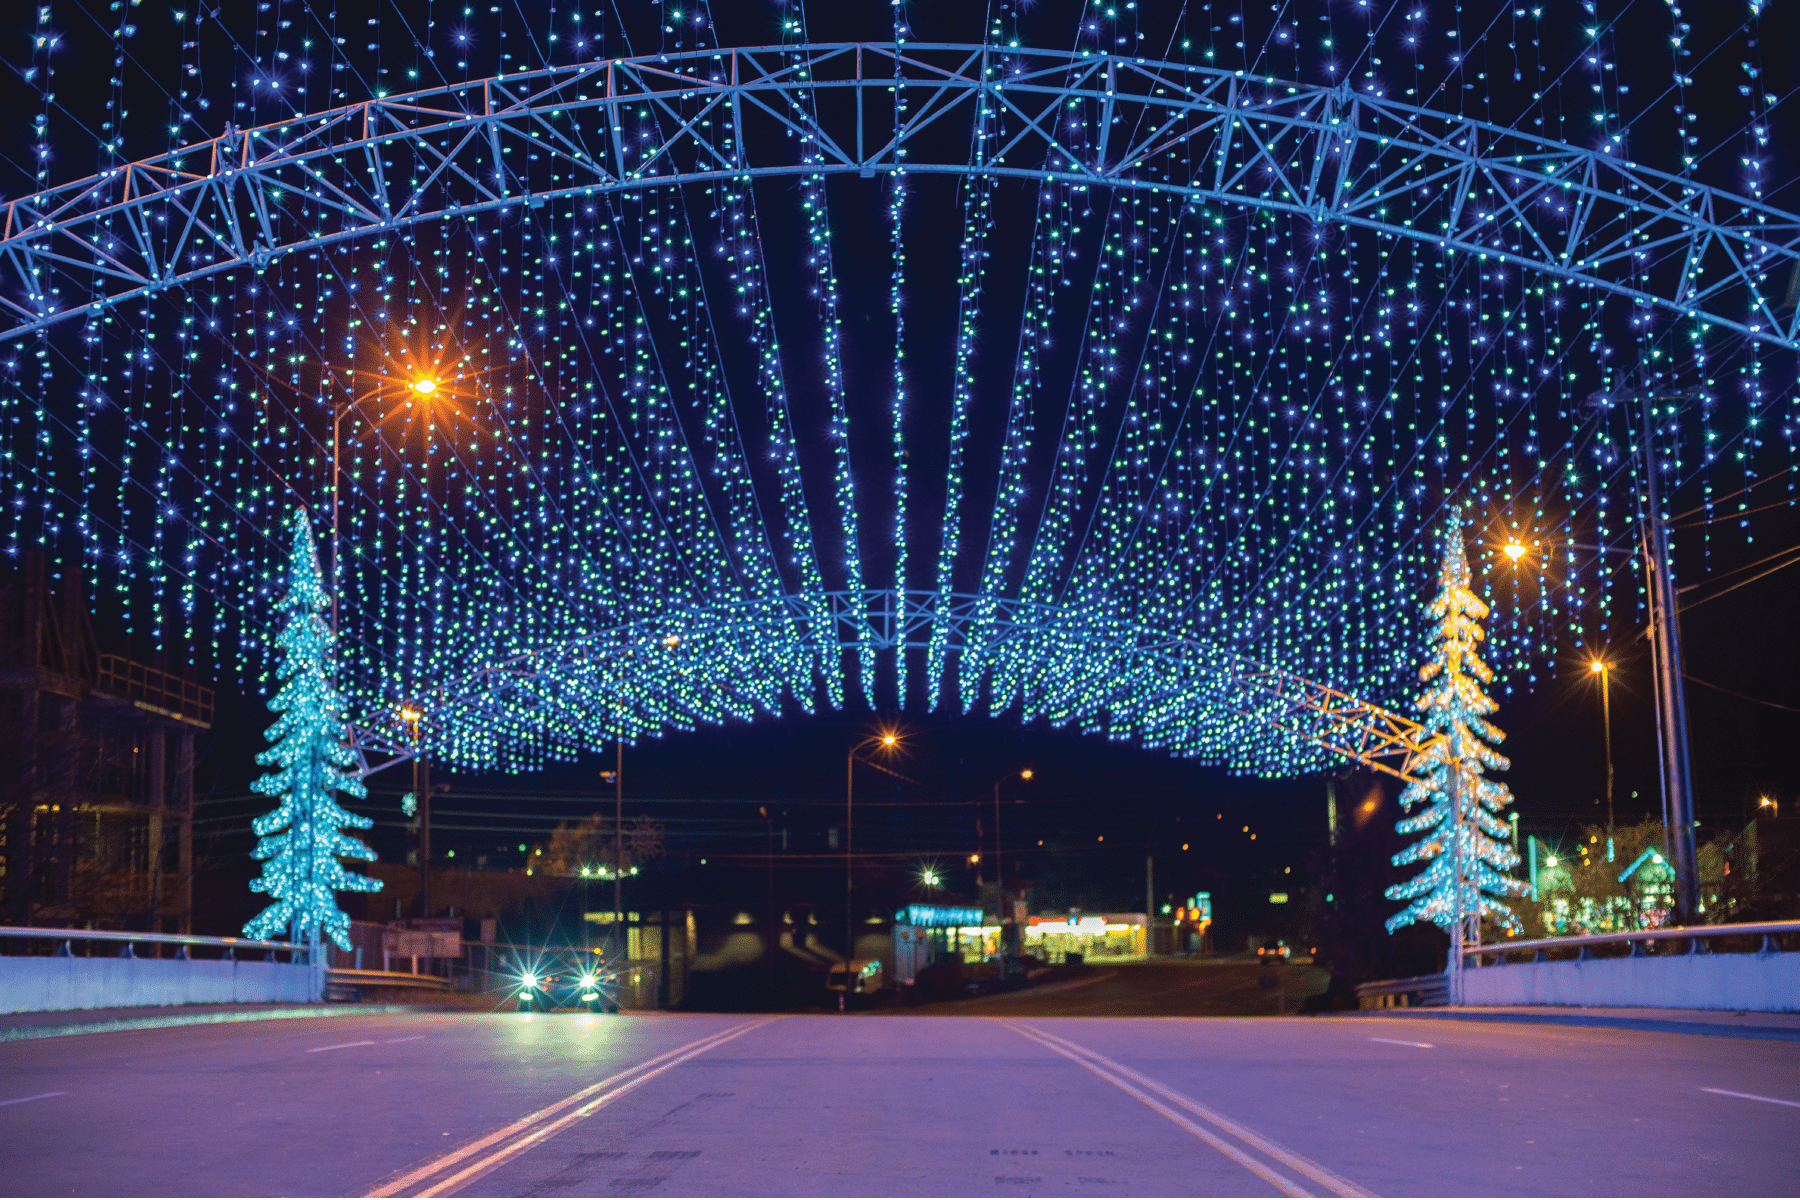 Winterfest lights over the bridge in Pigeon Forge.